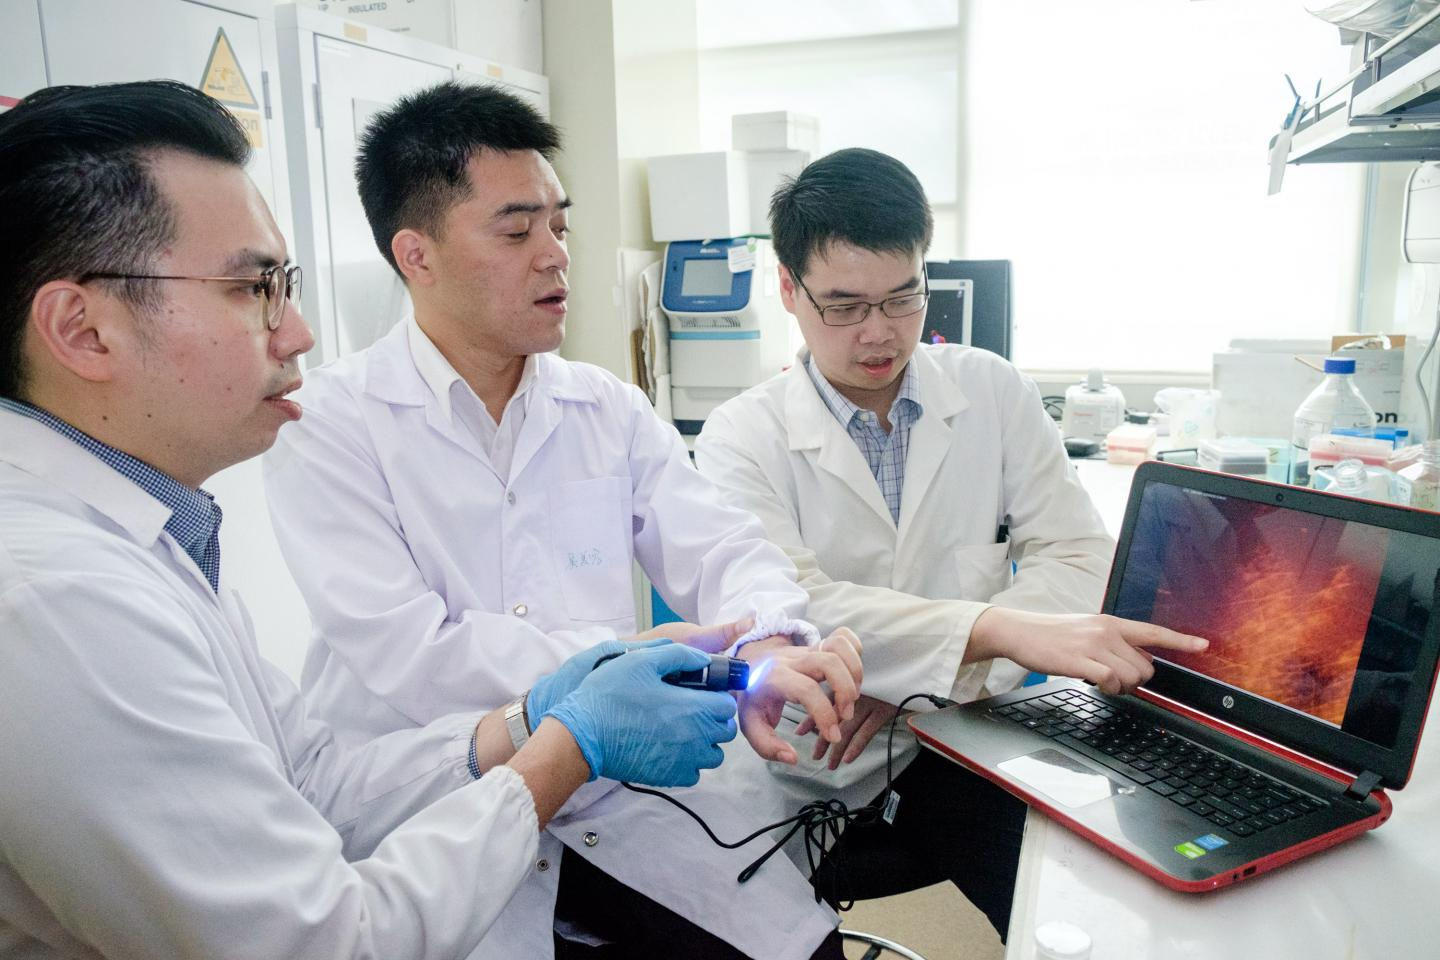 NTU Scientists use NanoFlares to Detect if There are Abnormal Scarring in Skin Cells